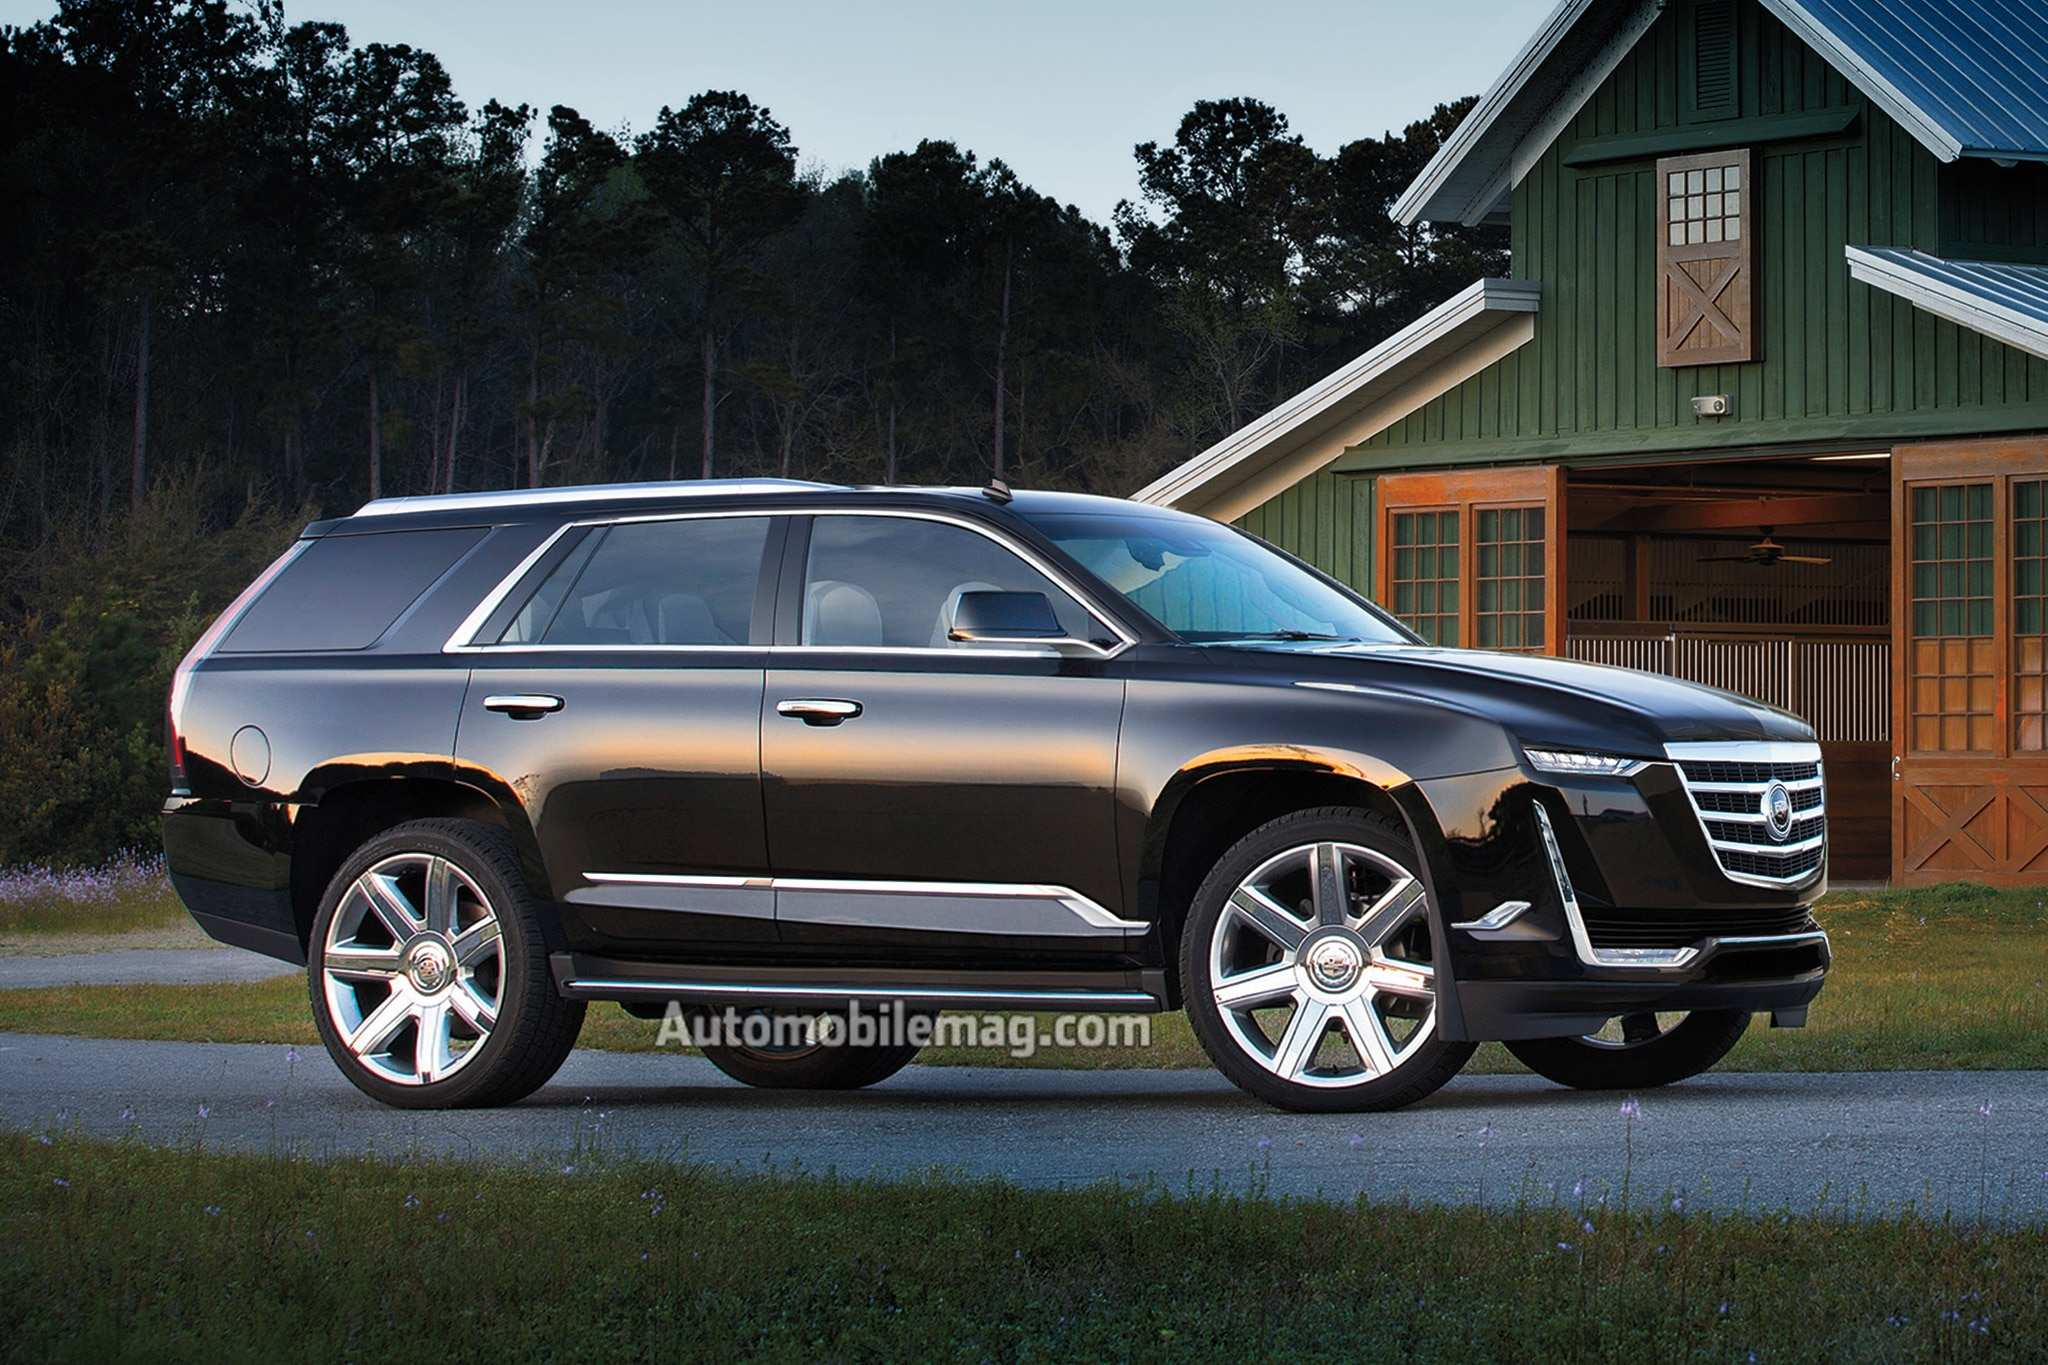 70 New 2020 Cadillac Escalade White Pricing with 2020 Cadillac Escalade White